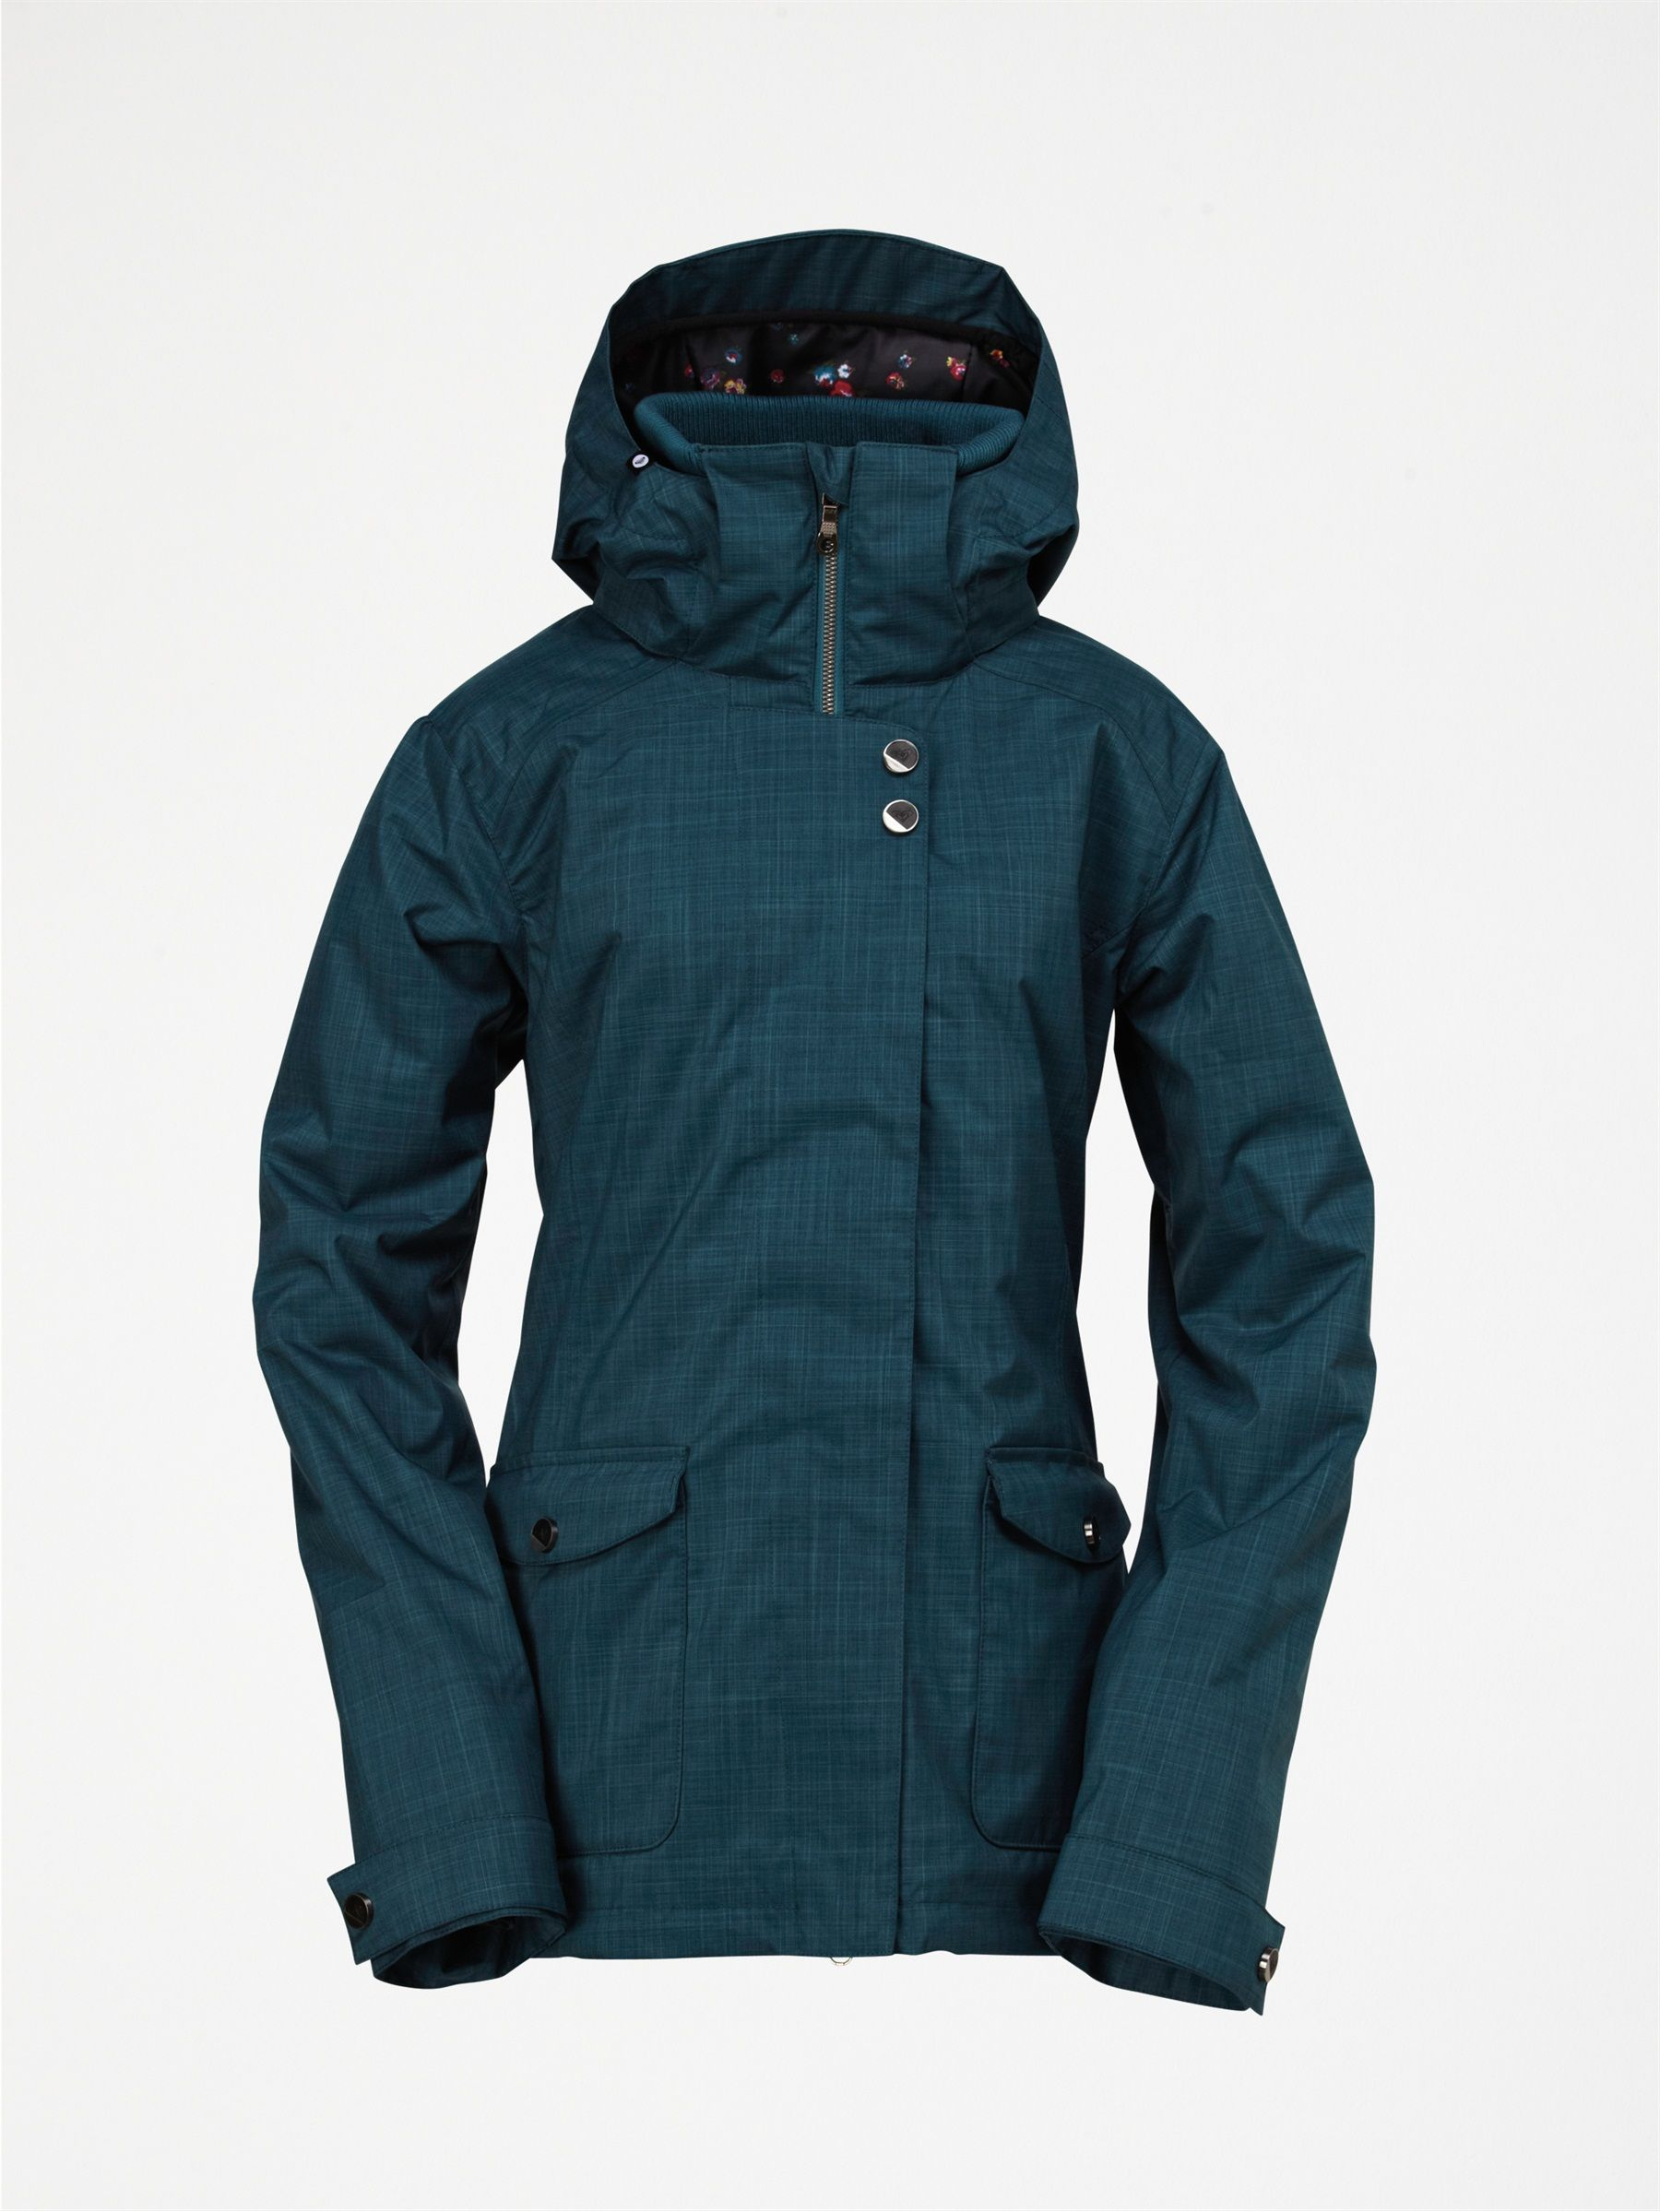 c4f44432ad1b roxy snow jacket